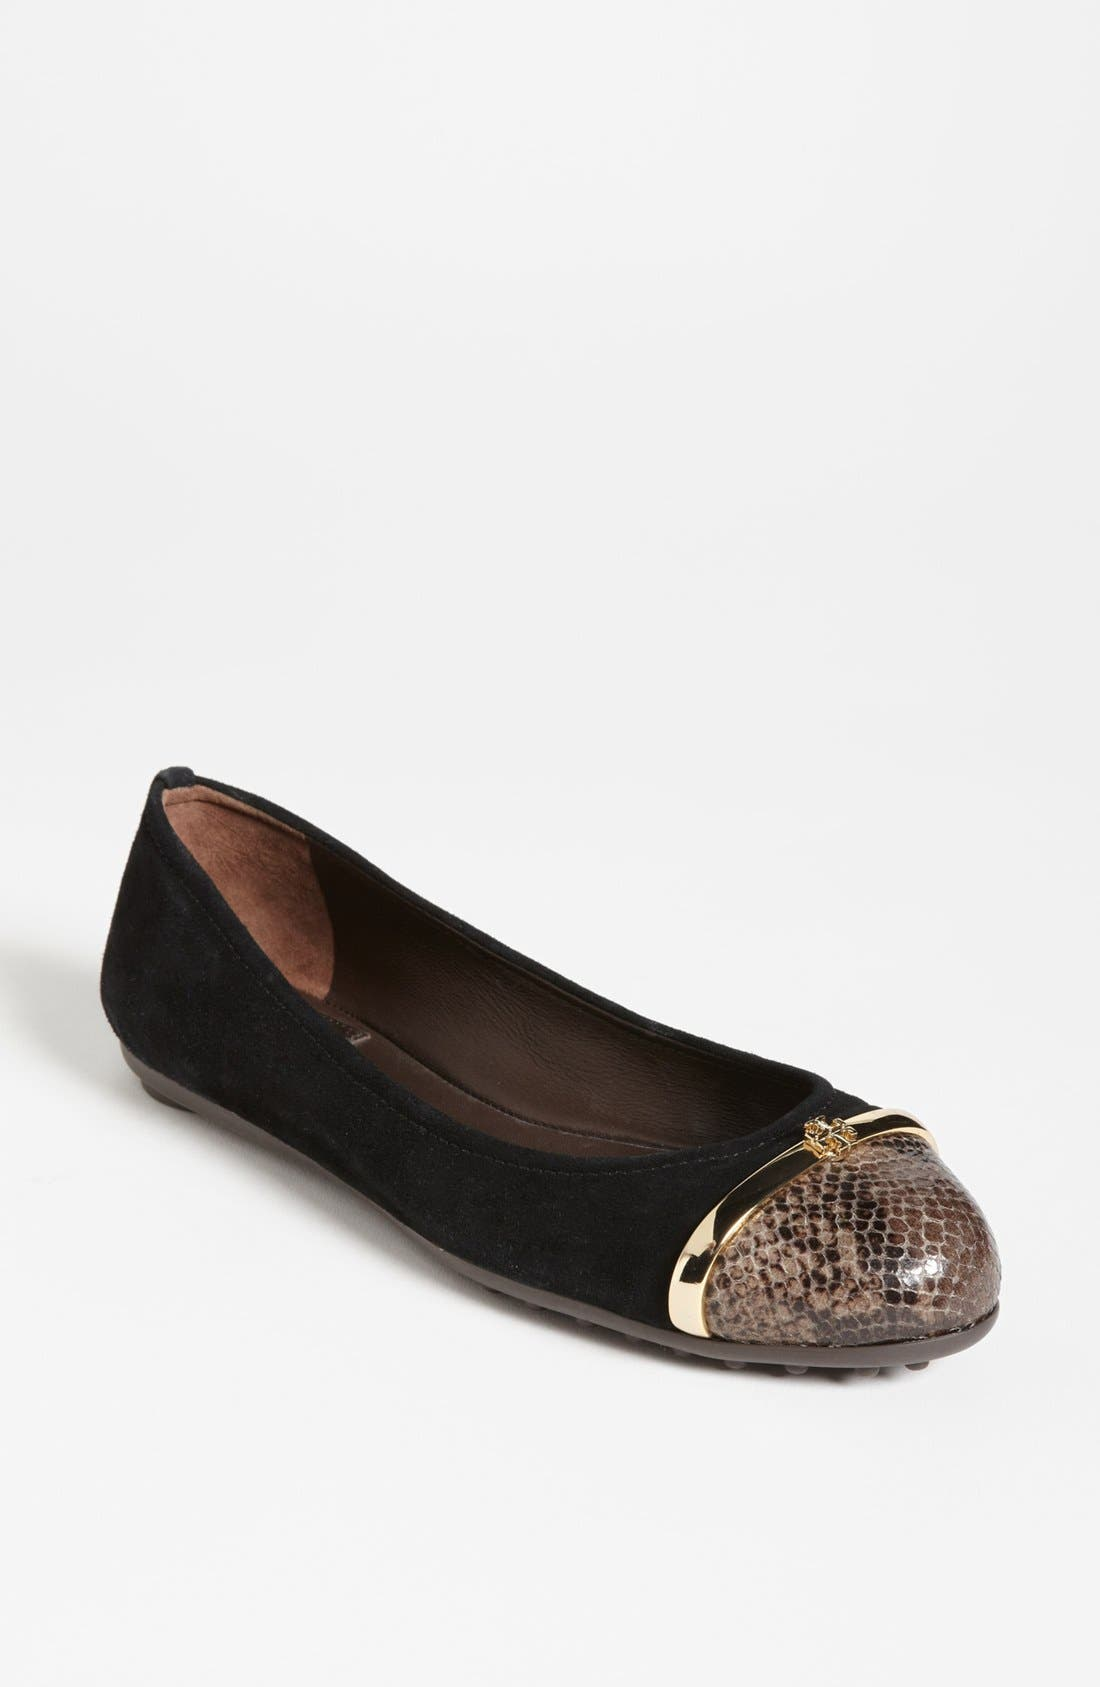 Main Image - Tory Burch 'Pacey' Skimmer Flat